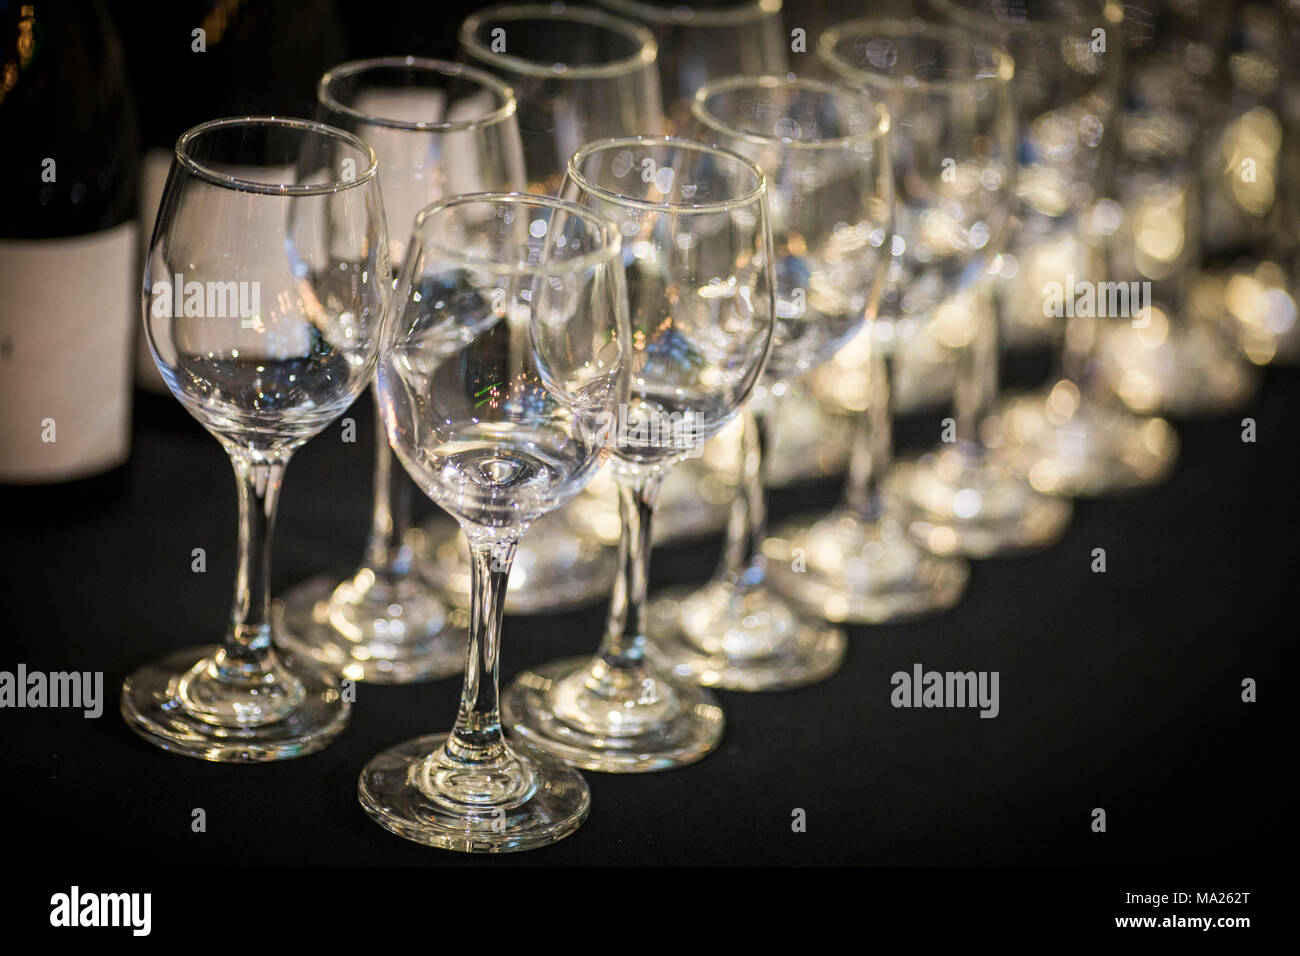 rows of wine glasses - Stock Image